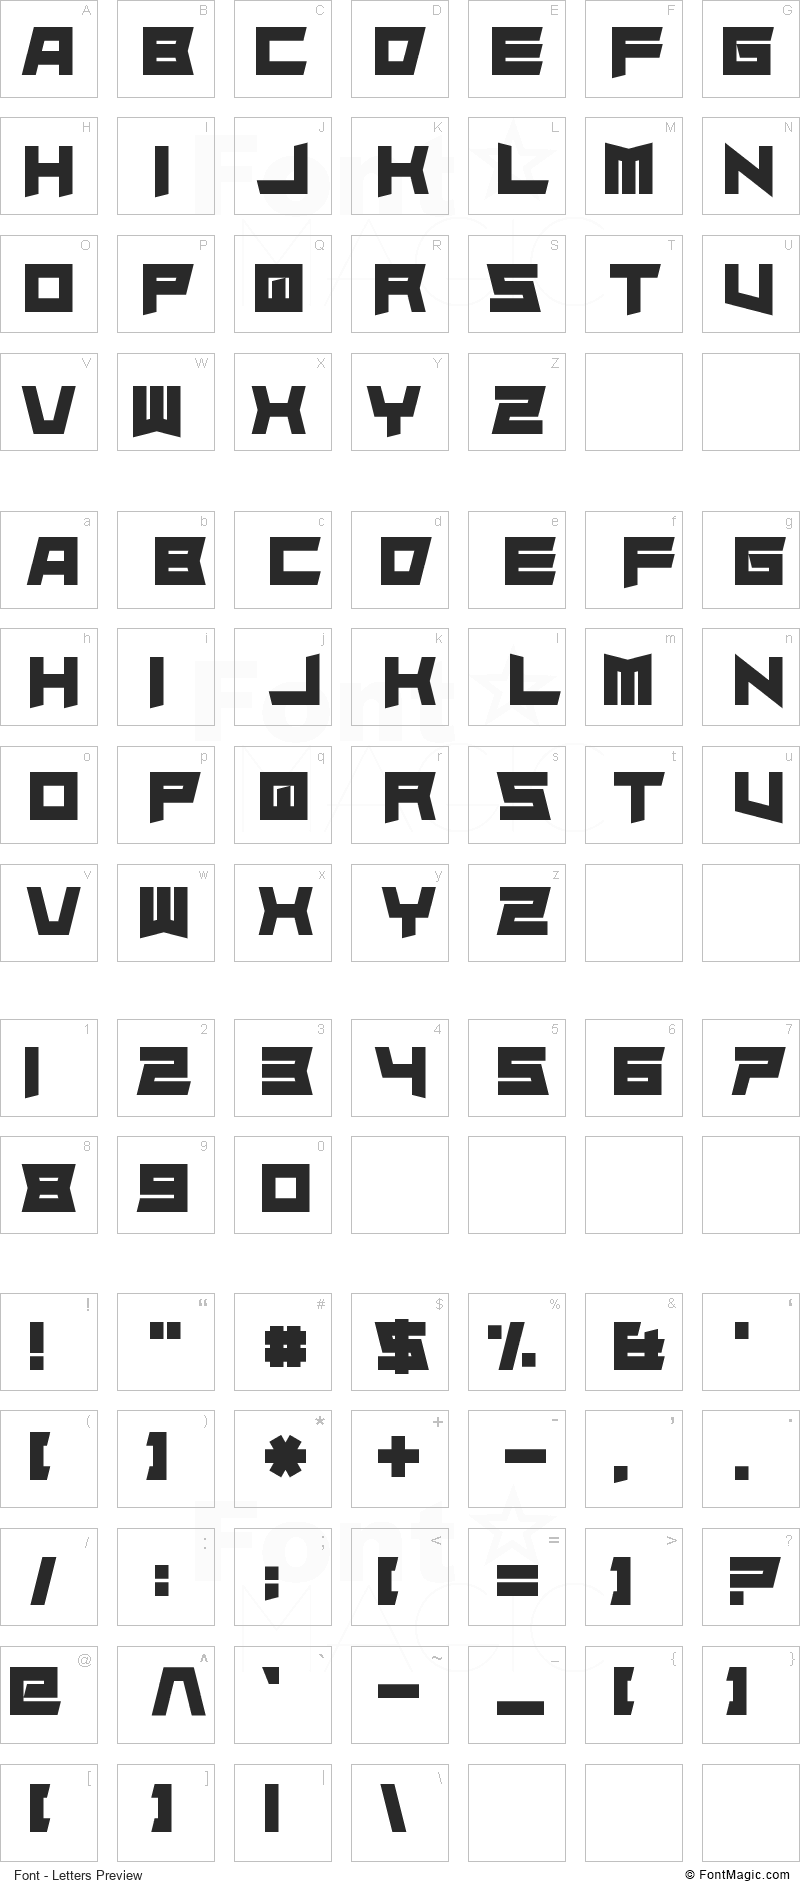 Superdie Font - All Latters Preview Chart